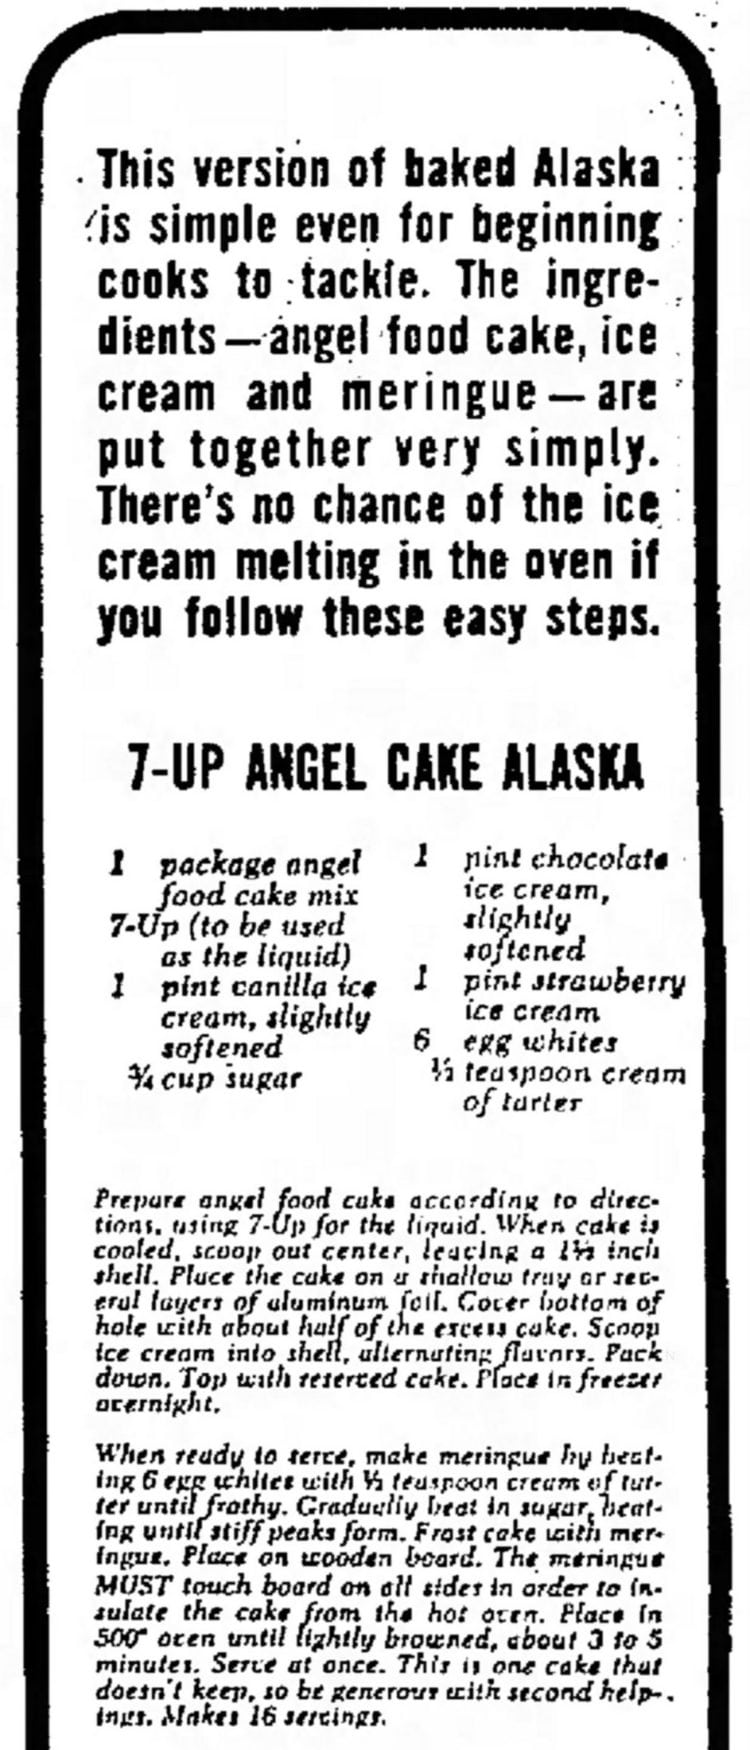 7-Up Angel Cake Alaska recipe